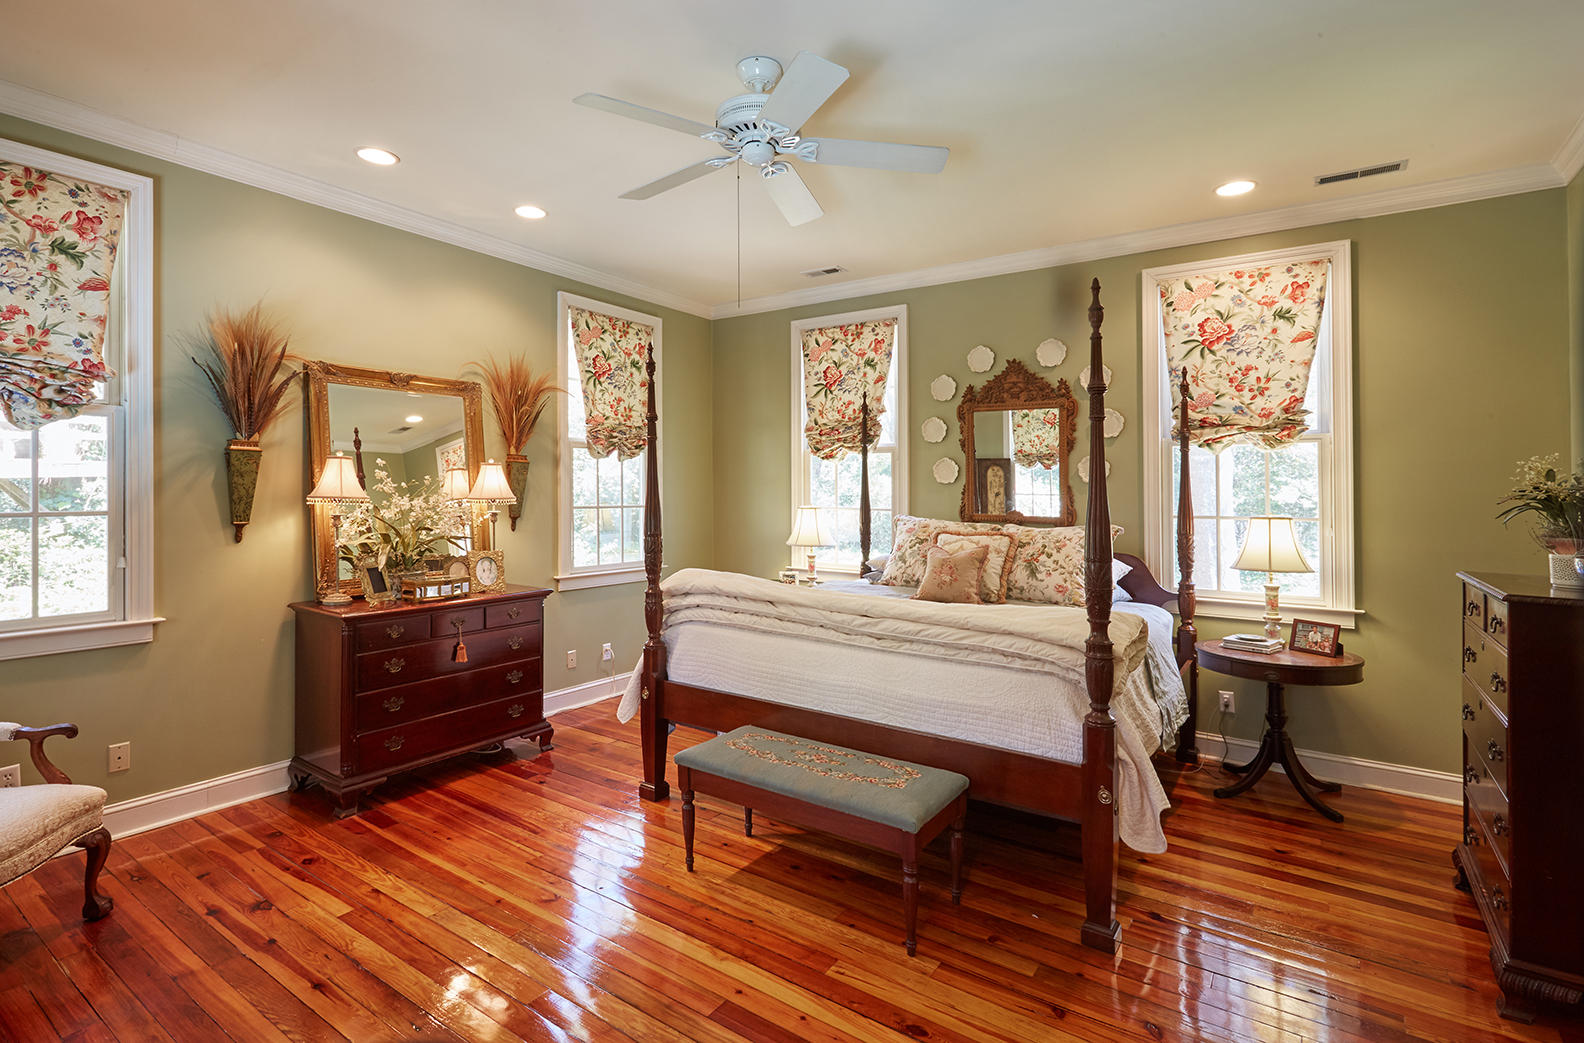 Historic District Homes For Sale - 115 Briarwood, Summerville, SC - 52